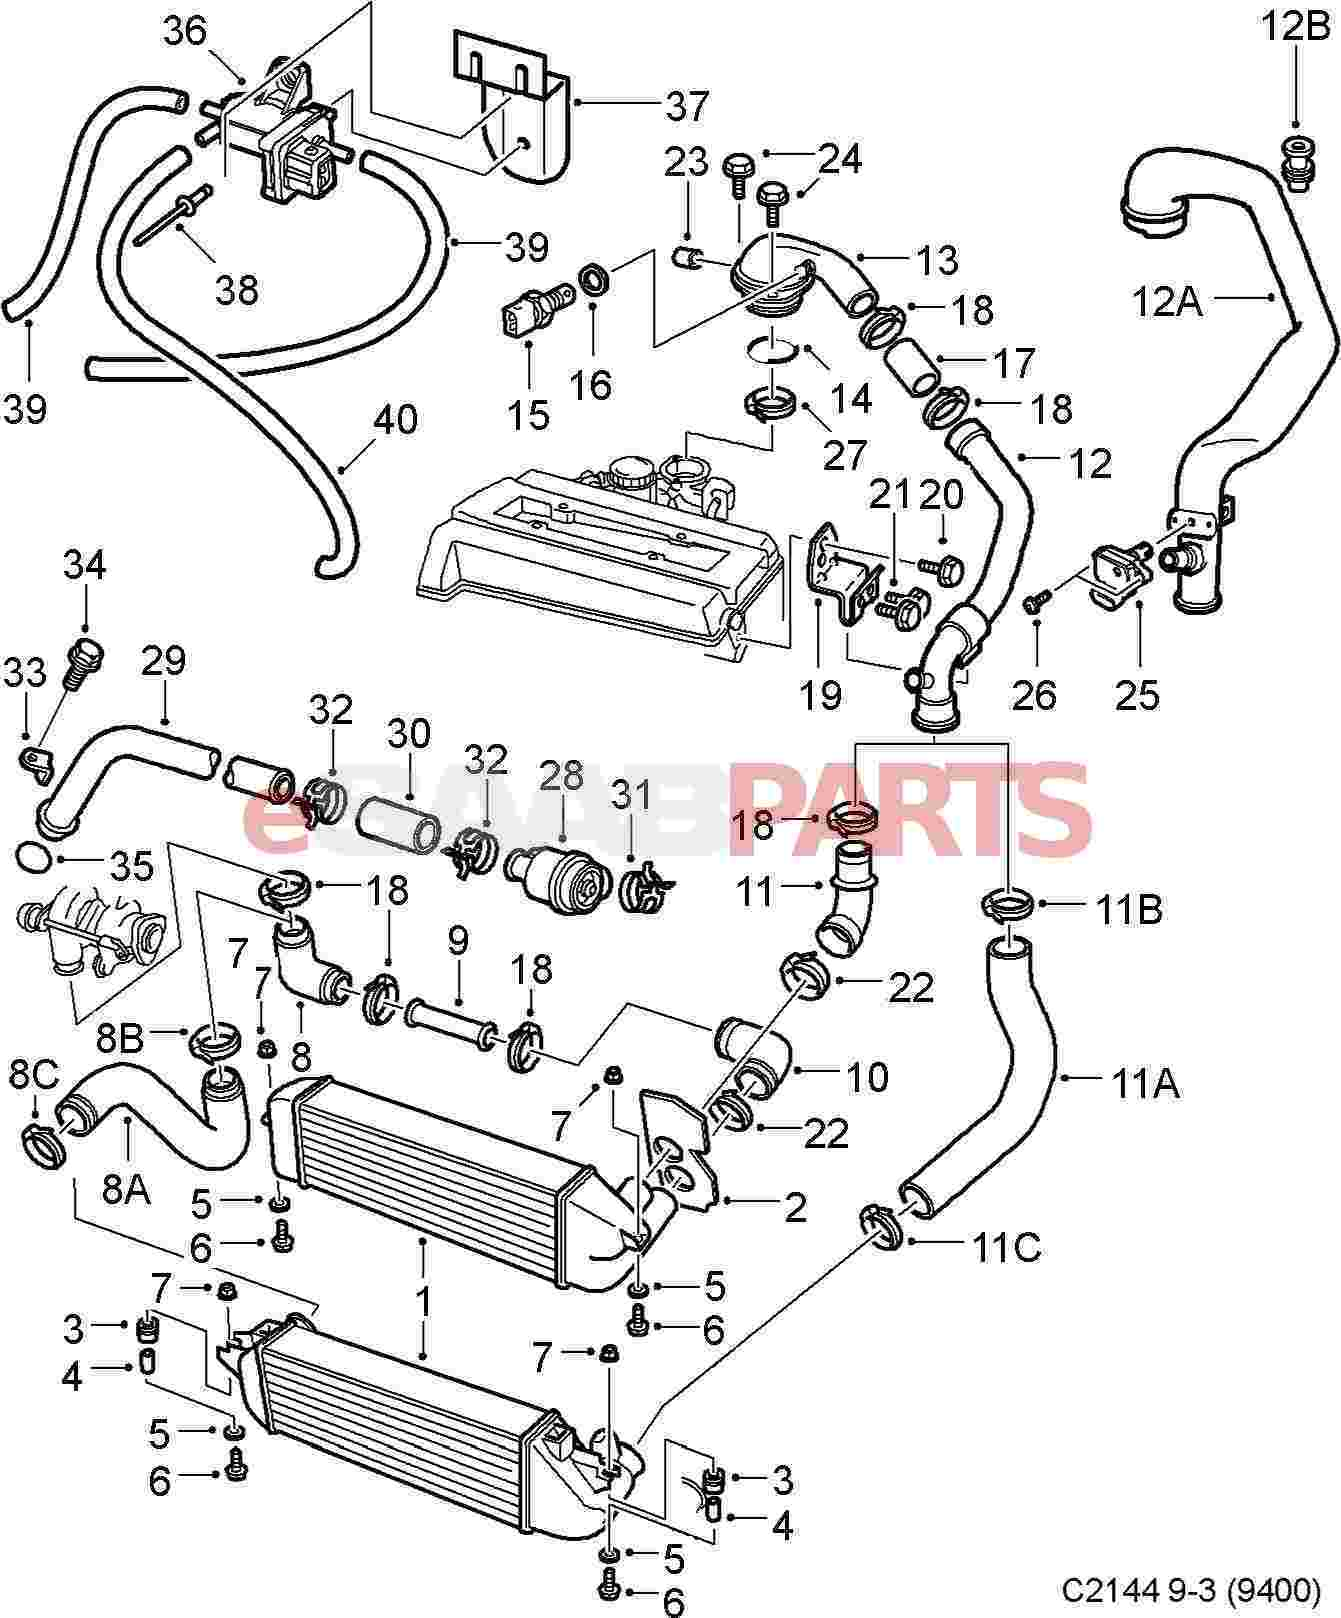 [DIAGRAM] 2003 Saab 9 5 Engine Diagram FULL Version HD